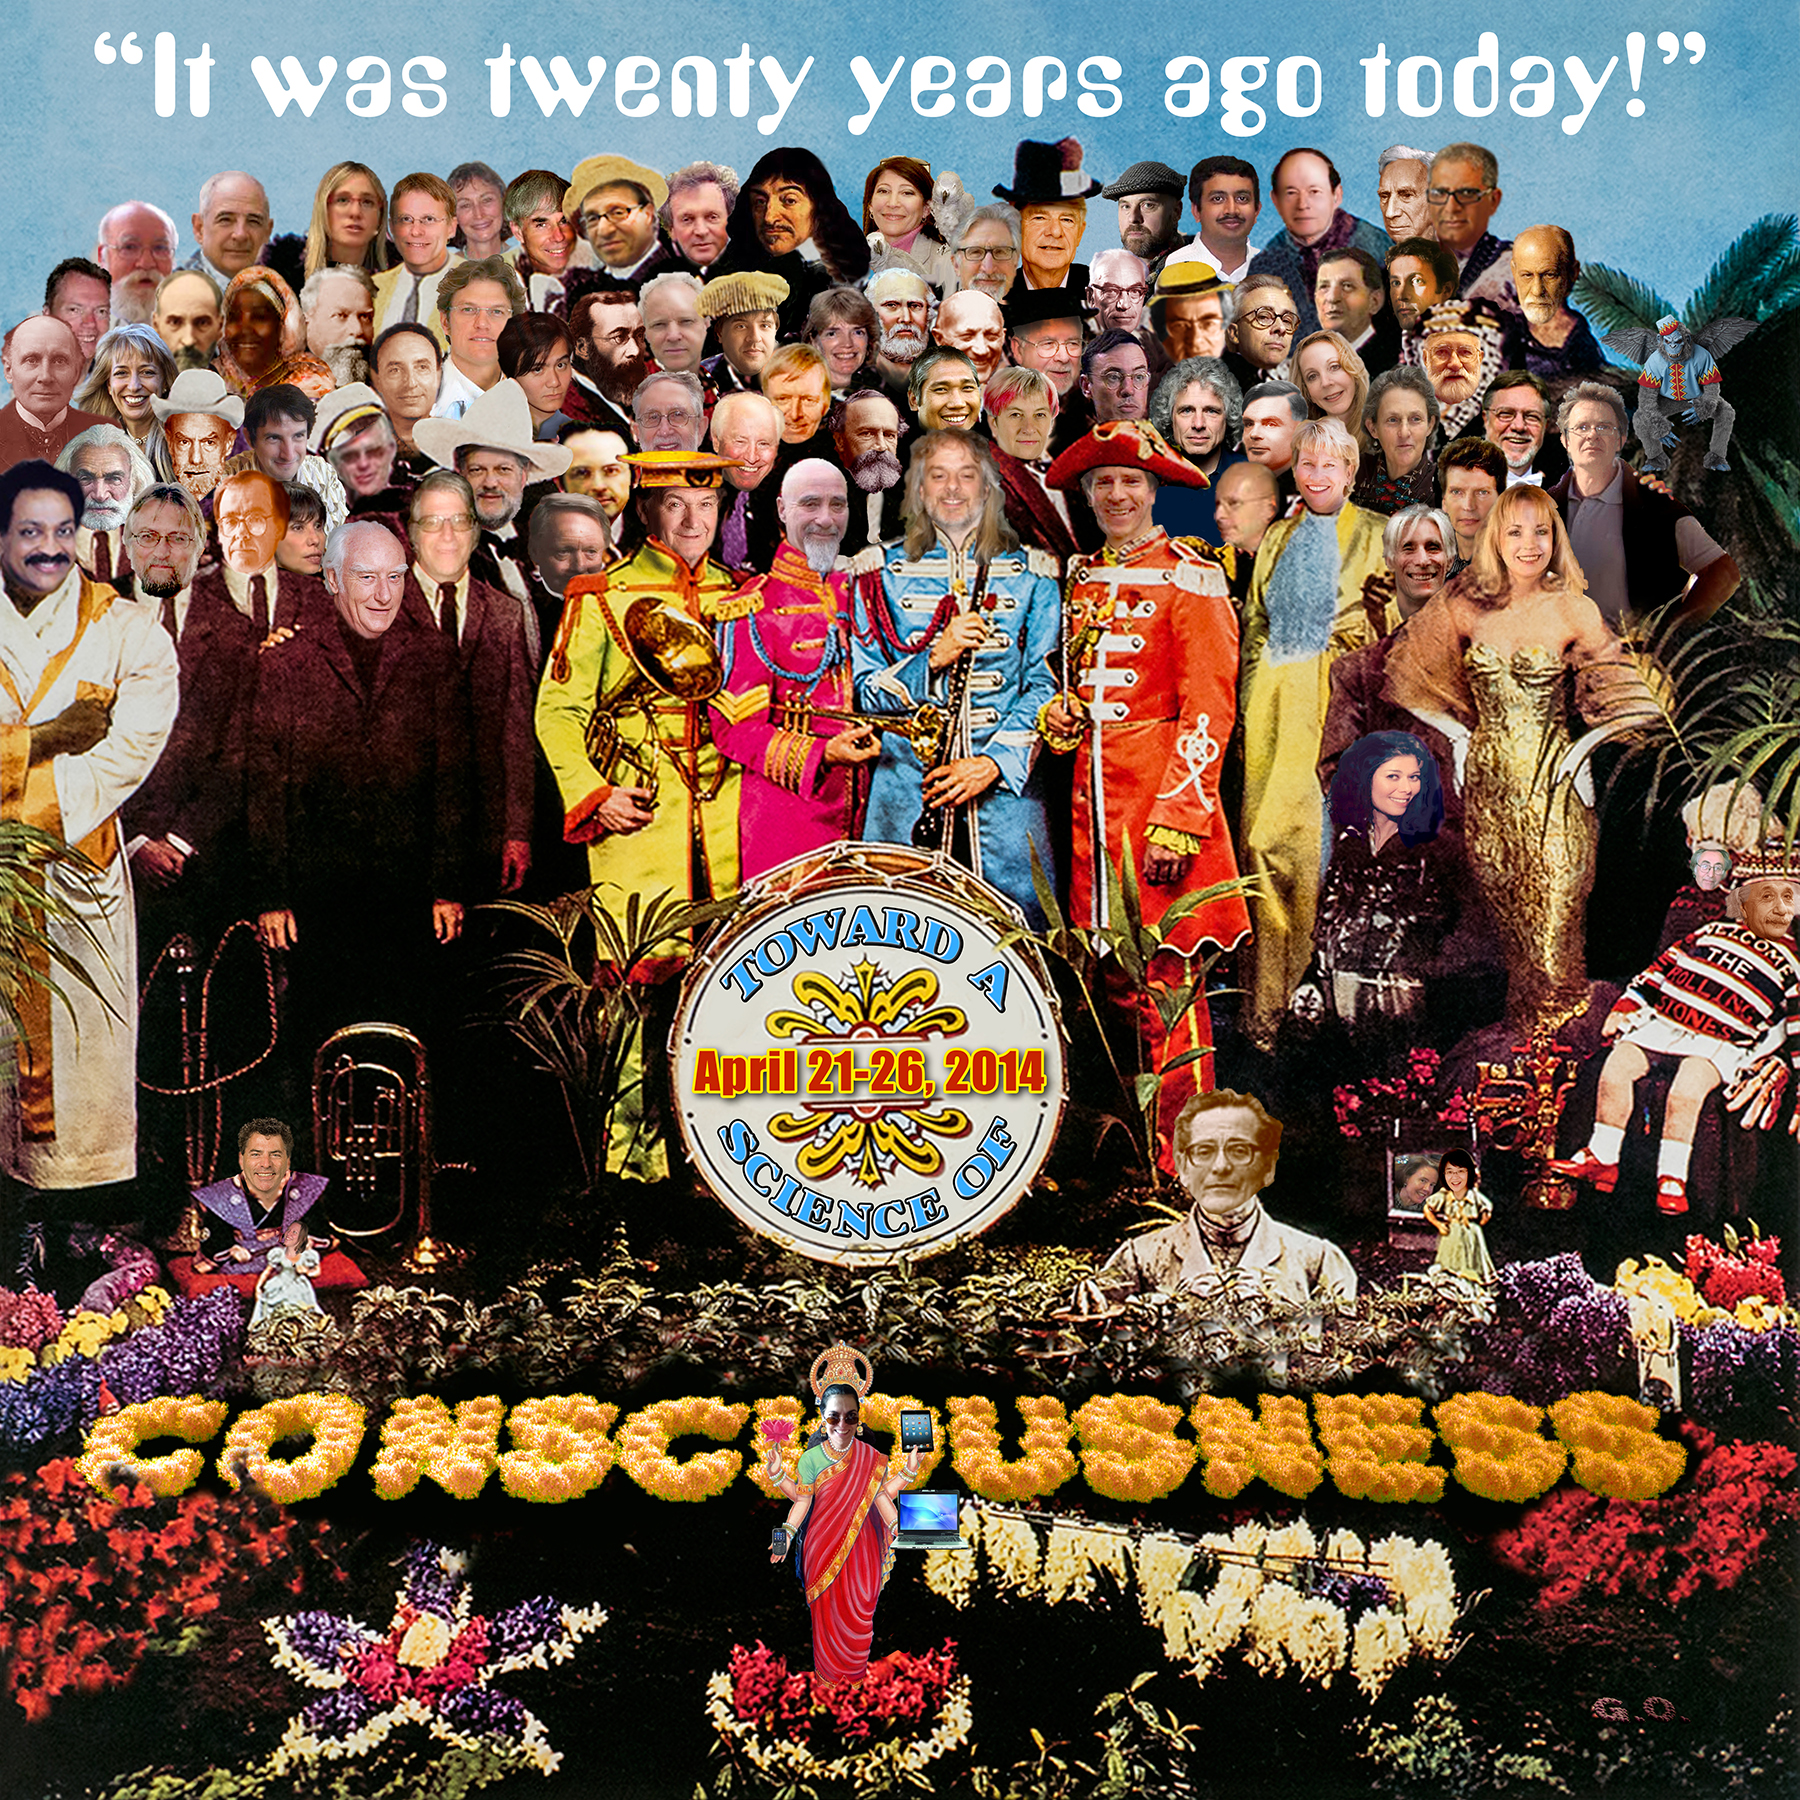 """Click on image to enlarge. The 20th anniversary Toward a Science of Consciousness 2014 conference logo is a rendition of The Beatles' """"Sgt. Pepper's Lonely Heart Club Band"""" album cover by Dave Cantrell, UA BioCommunications."""